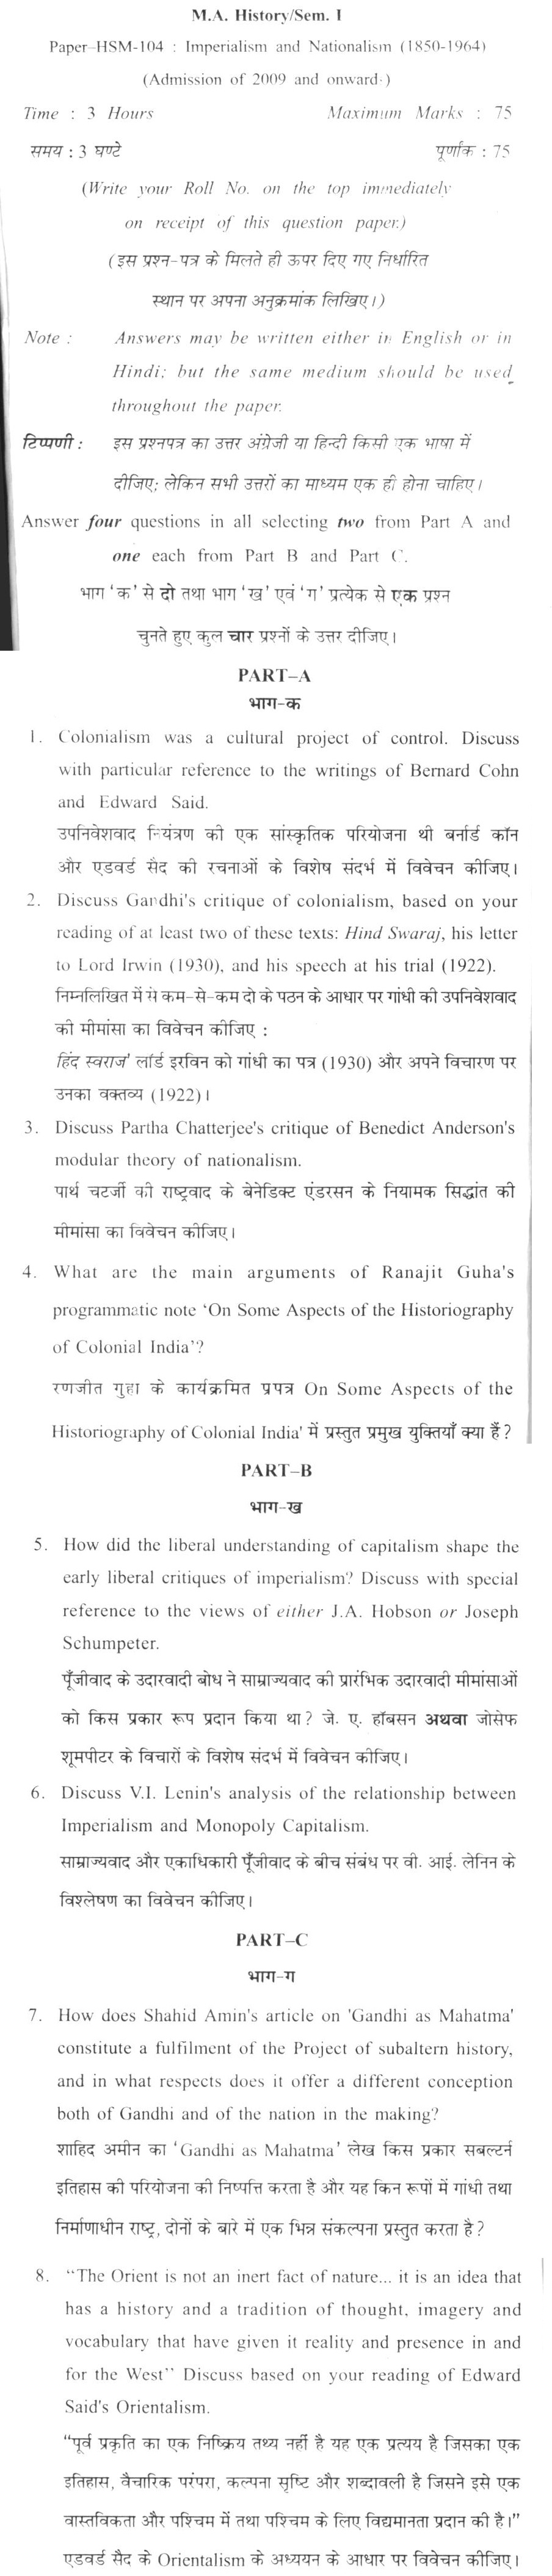 DU SOL M.A. History Question Paper - ISemesterHSM Imperialism And Nationalism(1850-1964) - Paper 104